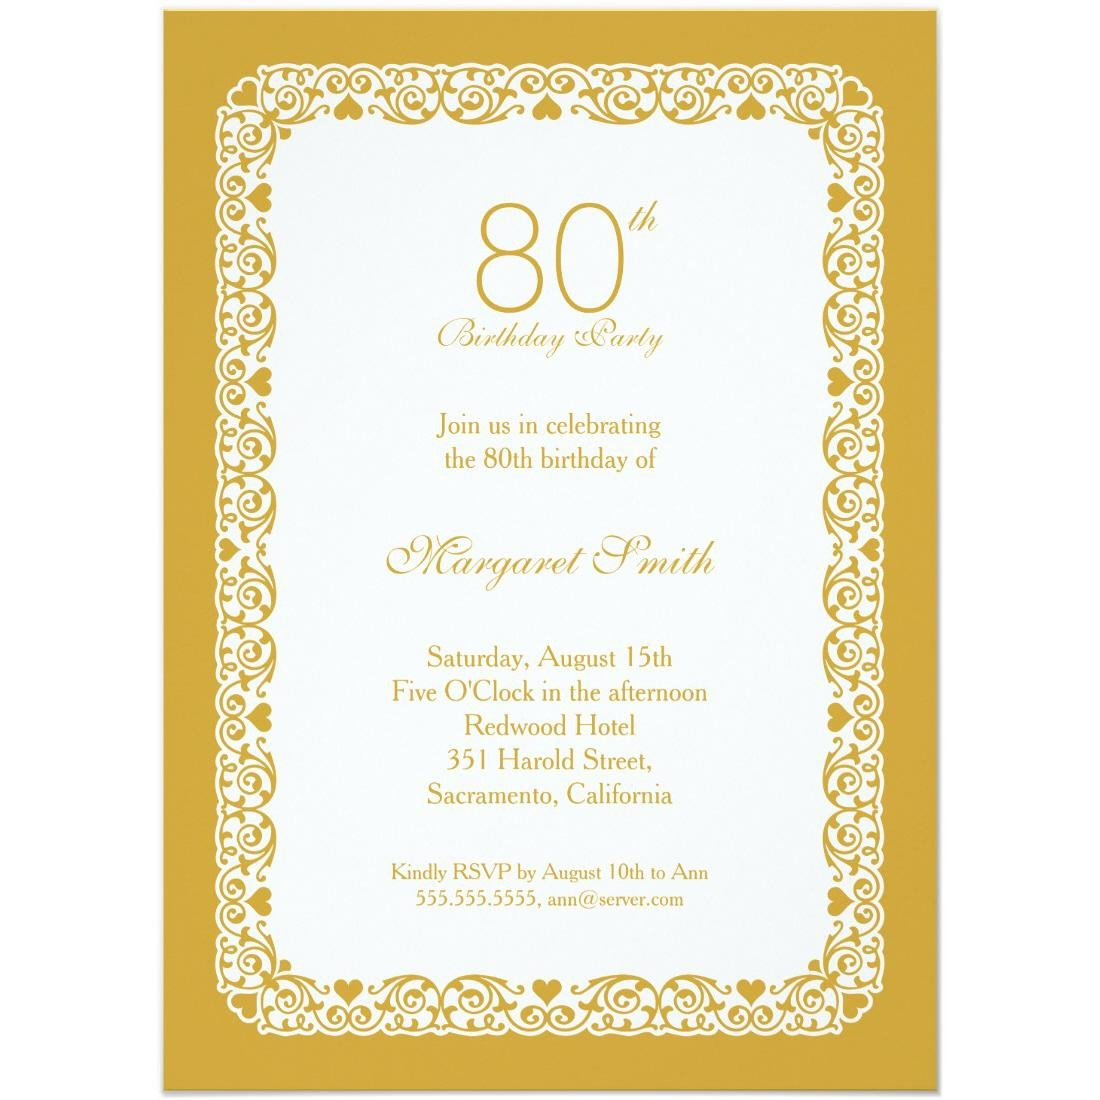 80th Birthday Invitation Templates 15 Sample 80th Birthday Invitations Templates Ideas